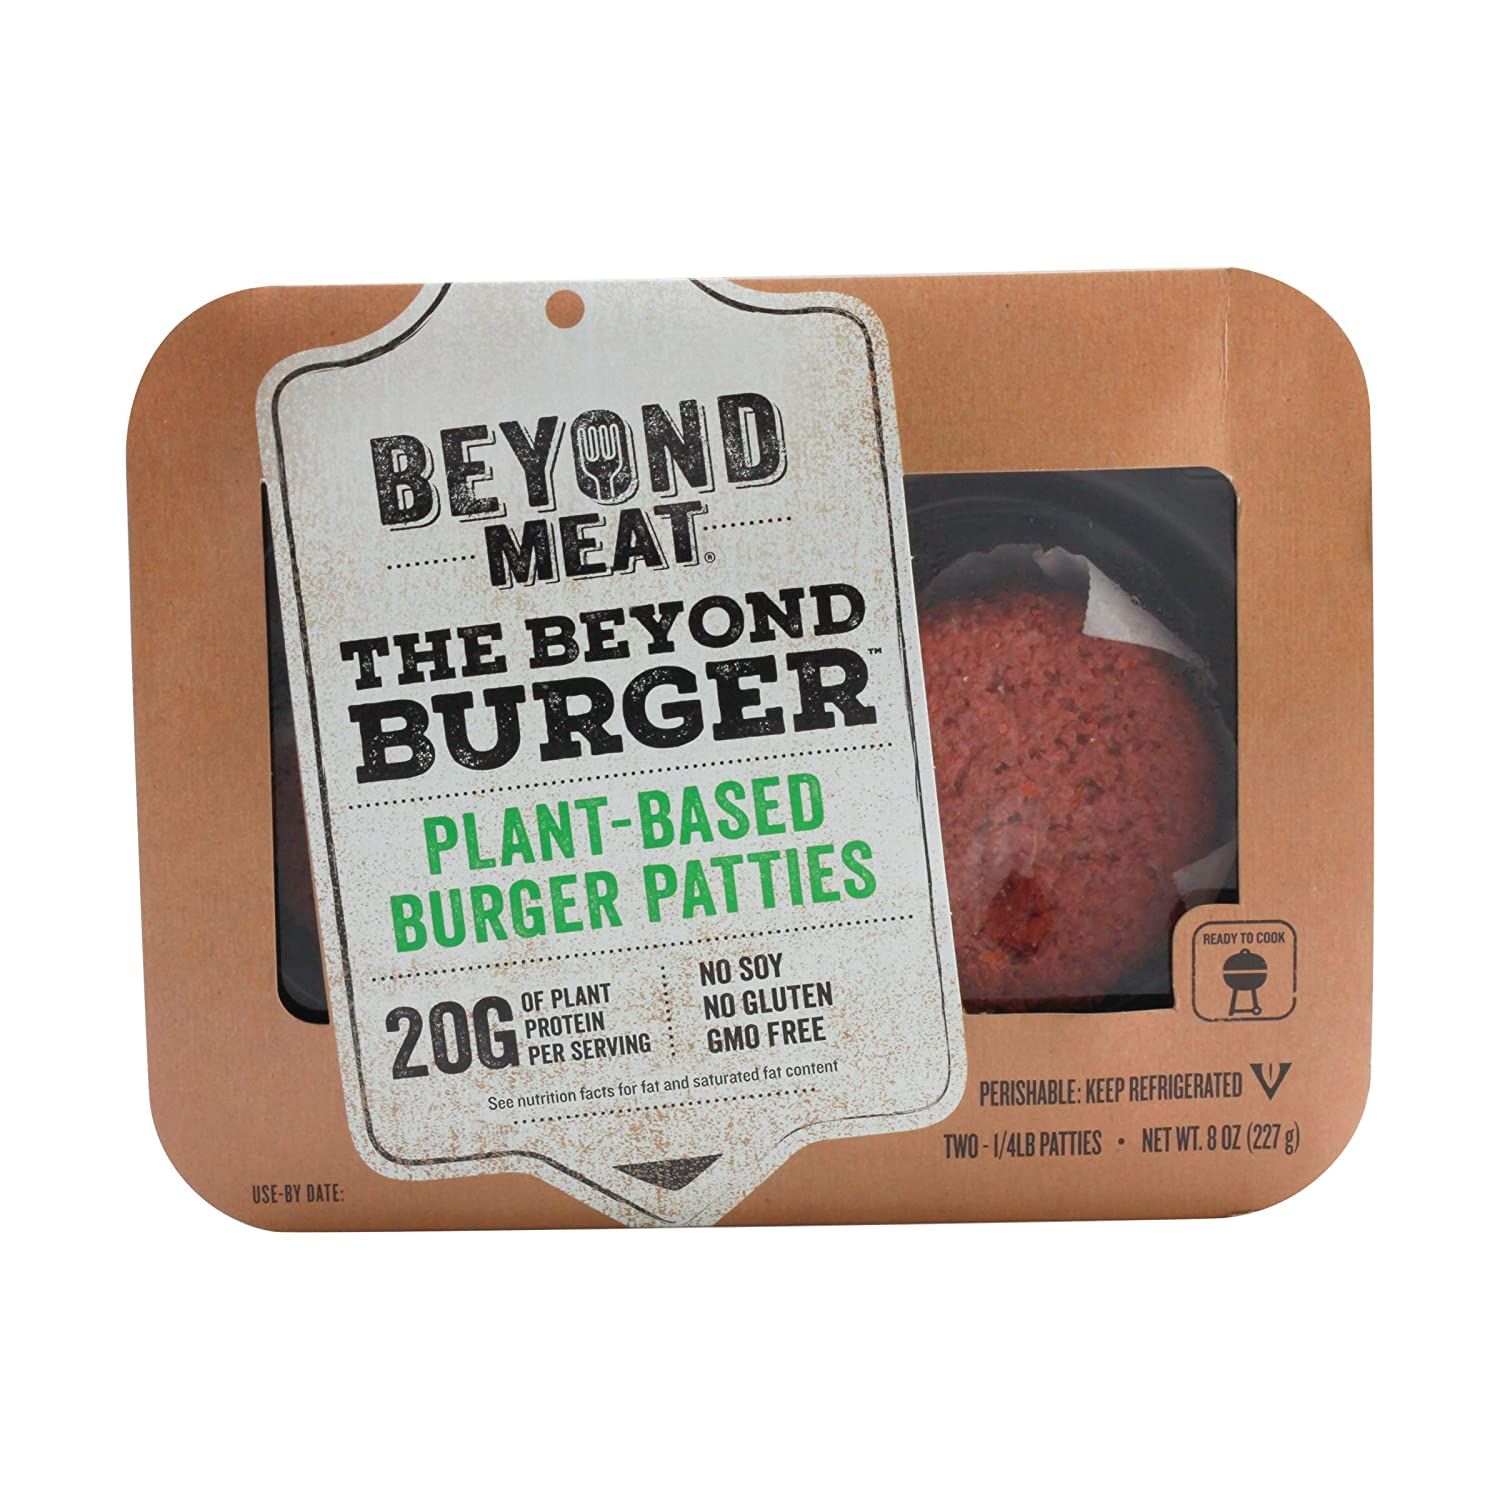 Beyond Meat Plant-based Burger Patties, 8 oz (4 Pack, 8 Patties Total) 81FTCSfKH7L._SL1500_